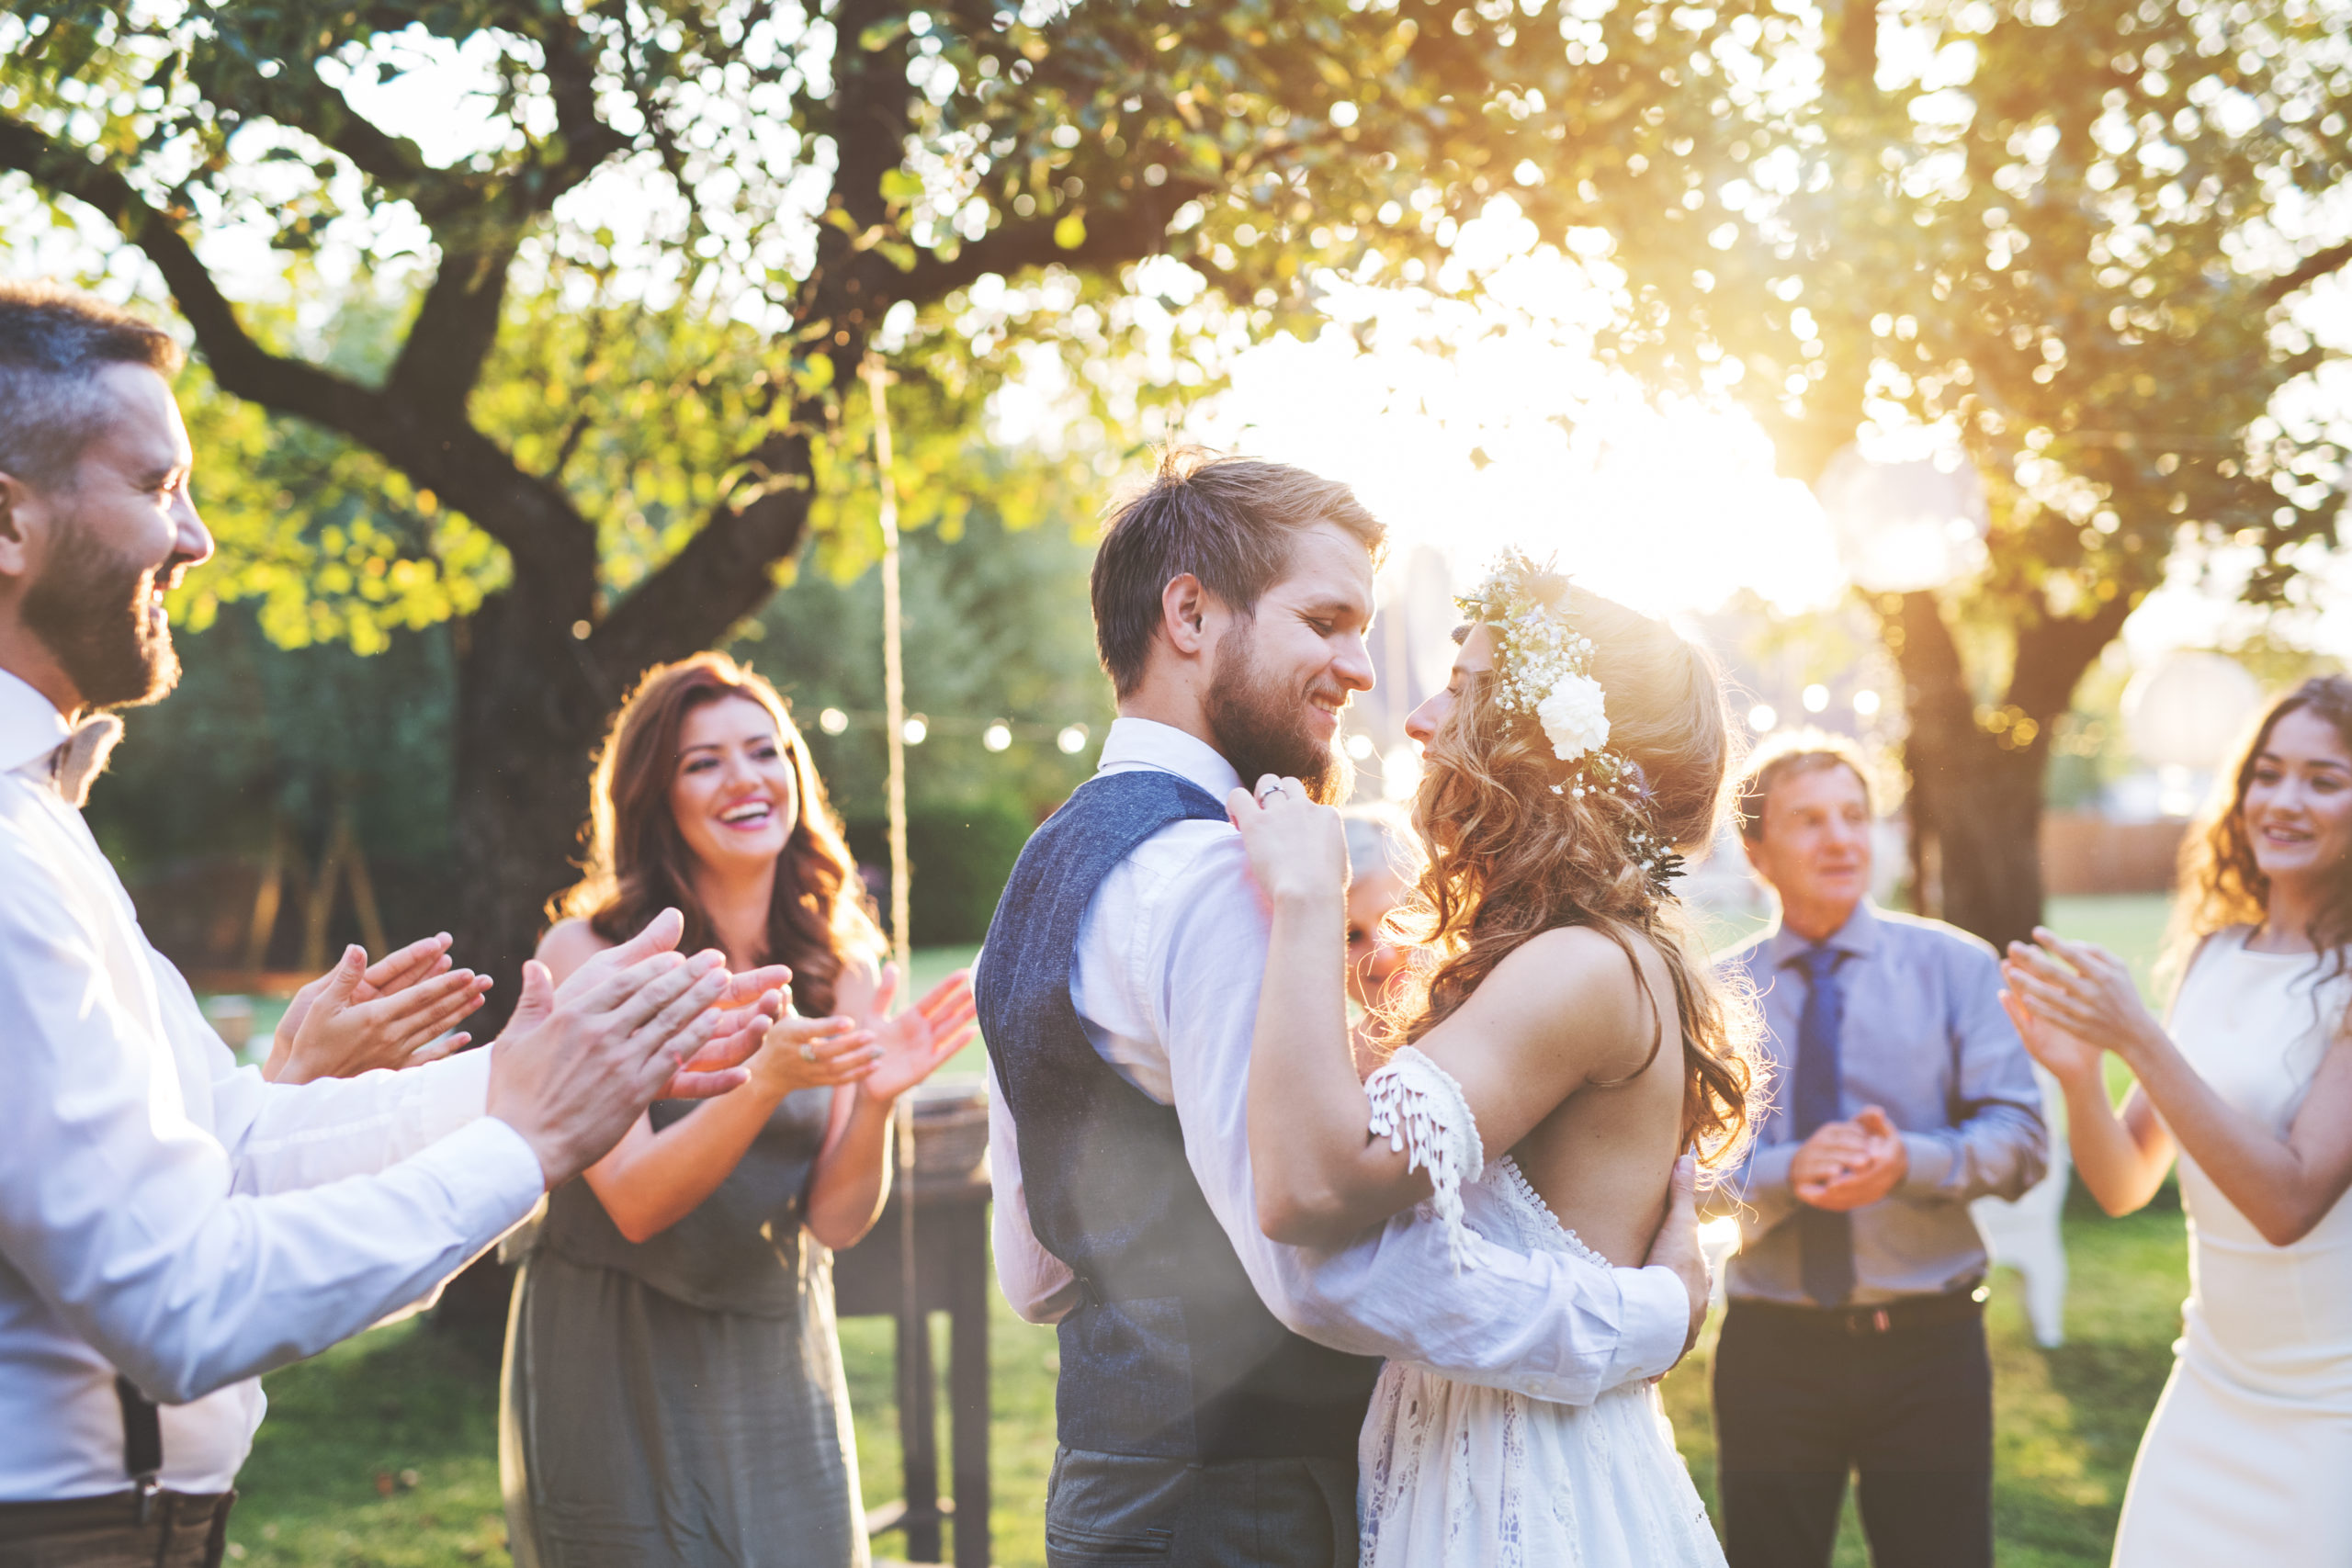 Bride,And,Groom,Dancing,At,Wedding,Reception,Outside,In,The